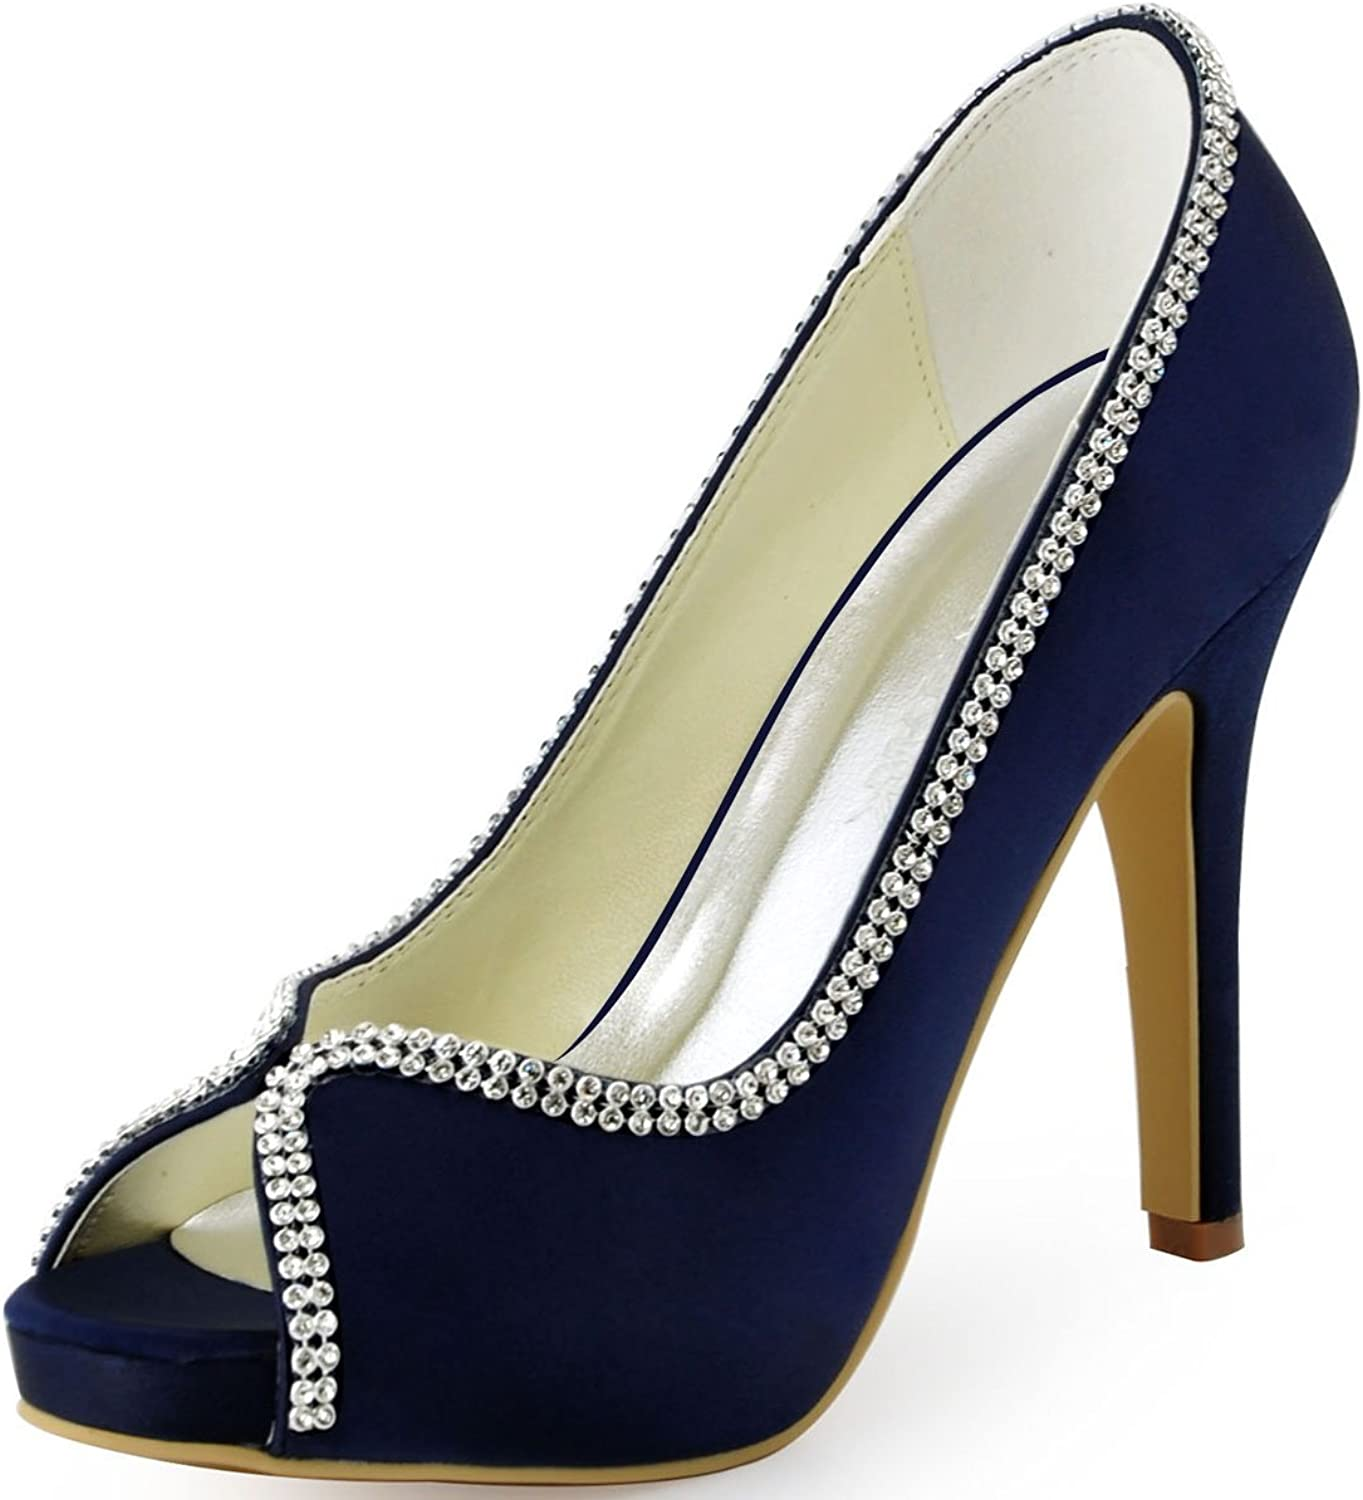 ElegantPark EP11083-IP Women Peep Toe Platform Satin Rhinestones Prom High Heel Evening Party shoes Navy bluee US 7